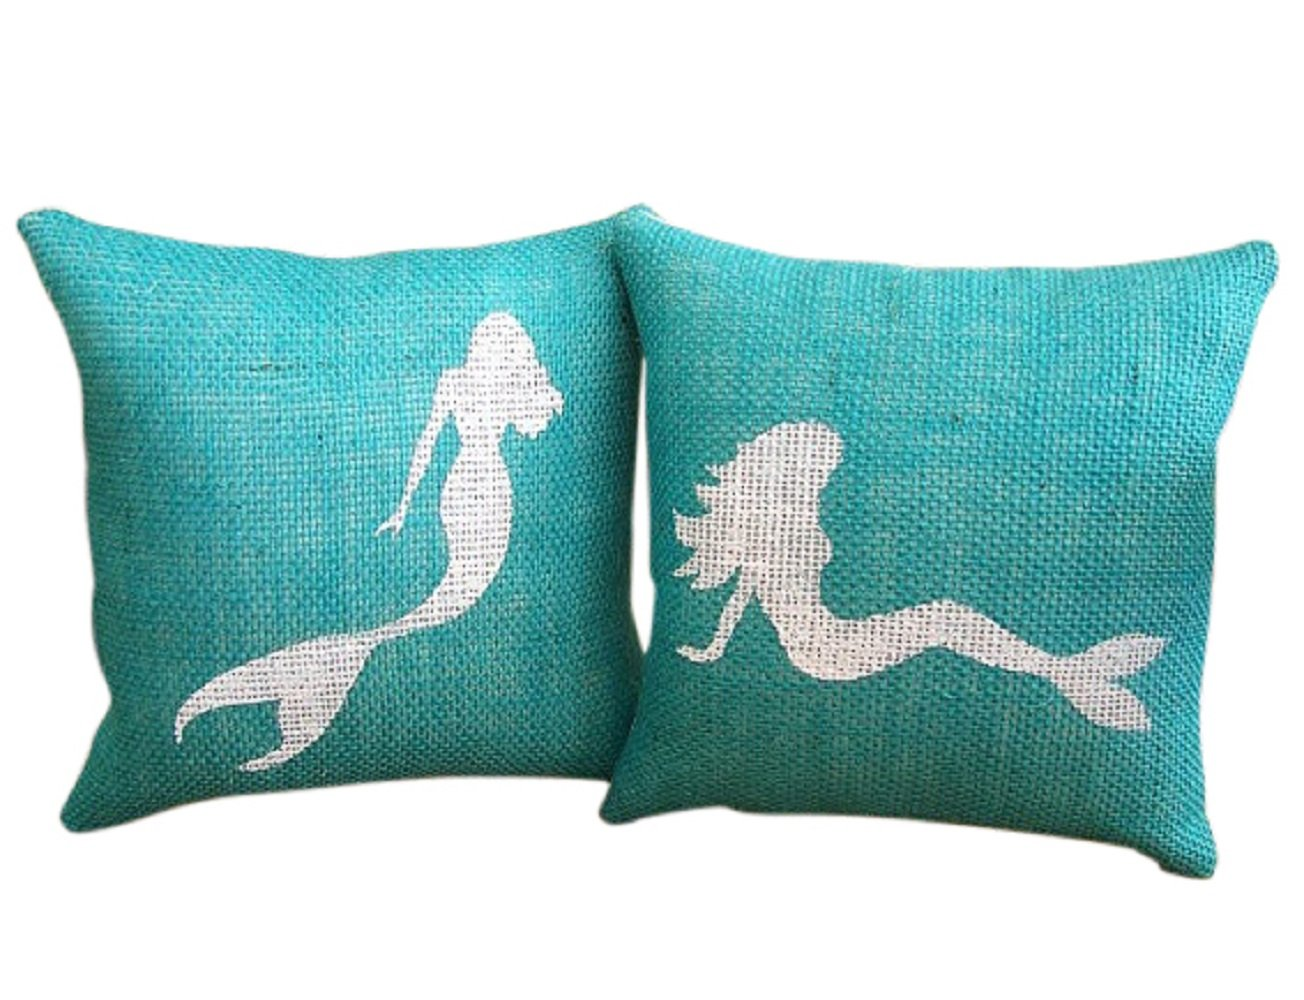 MaxEcor Turquoise Mermaid Burlap 9 inches Cushion Living Room Insert Throw Pillow (Price is 1 Pillow) (9x9, Sit Mermaid)